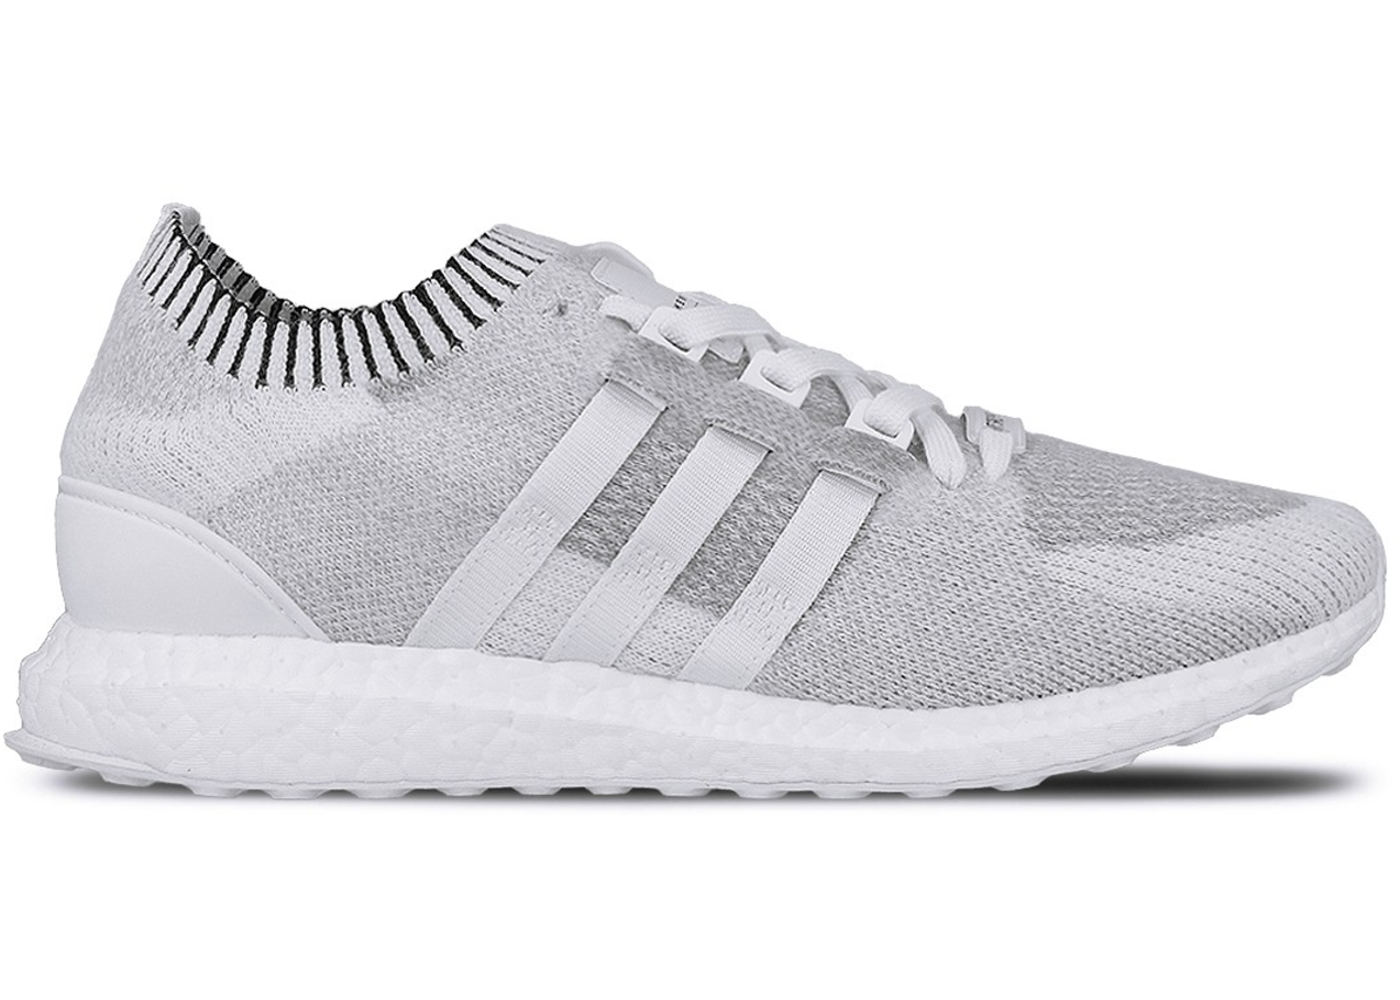 adidas EQT Support RF Shoes White adidas Cheap Adidas EQT